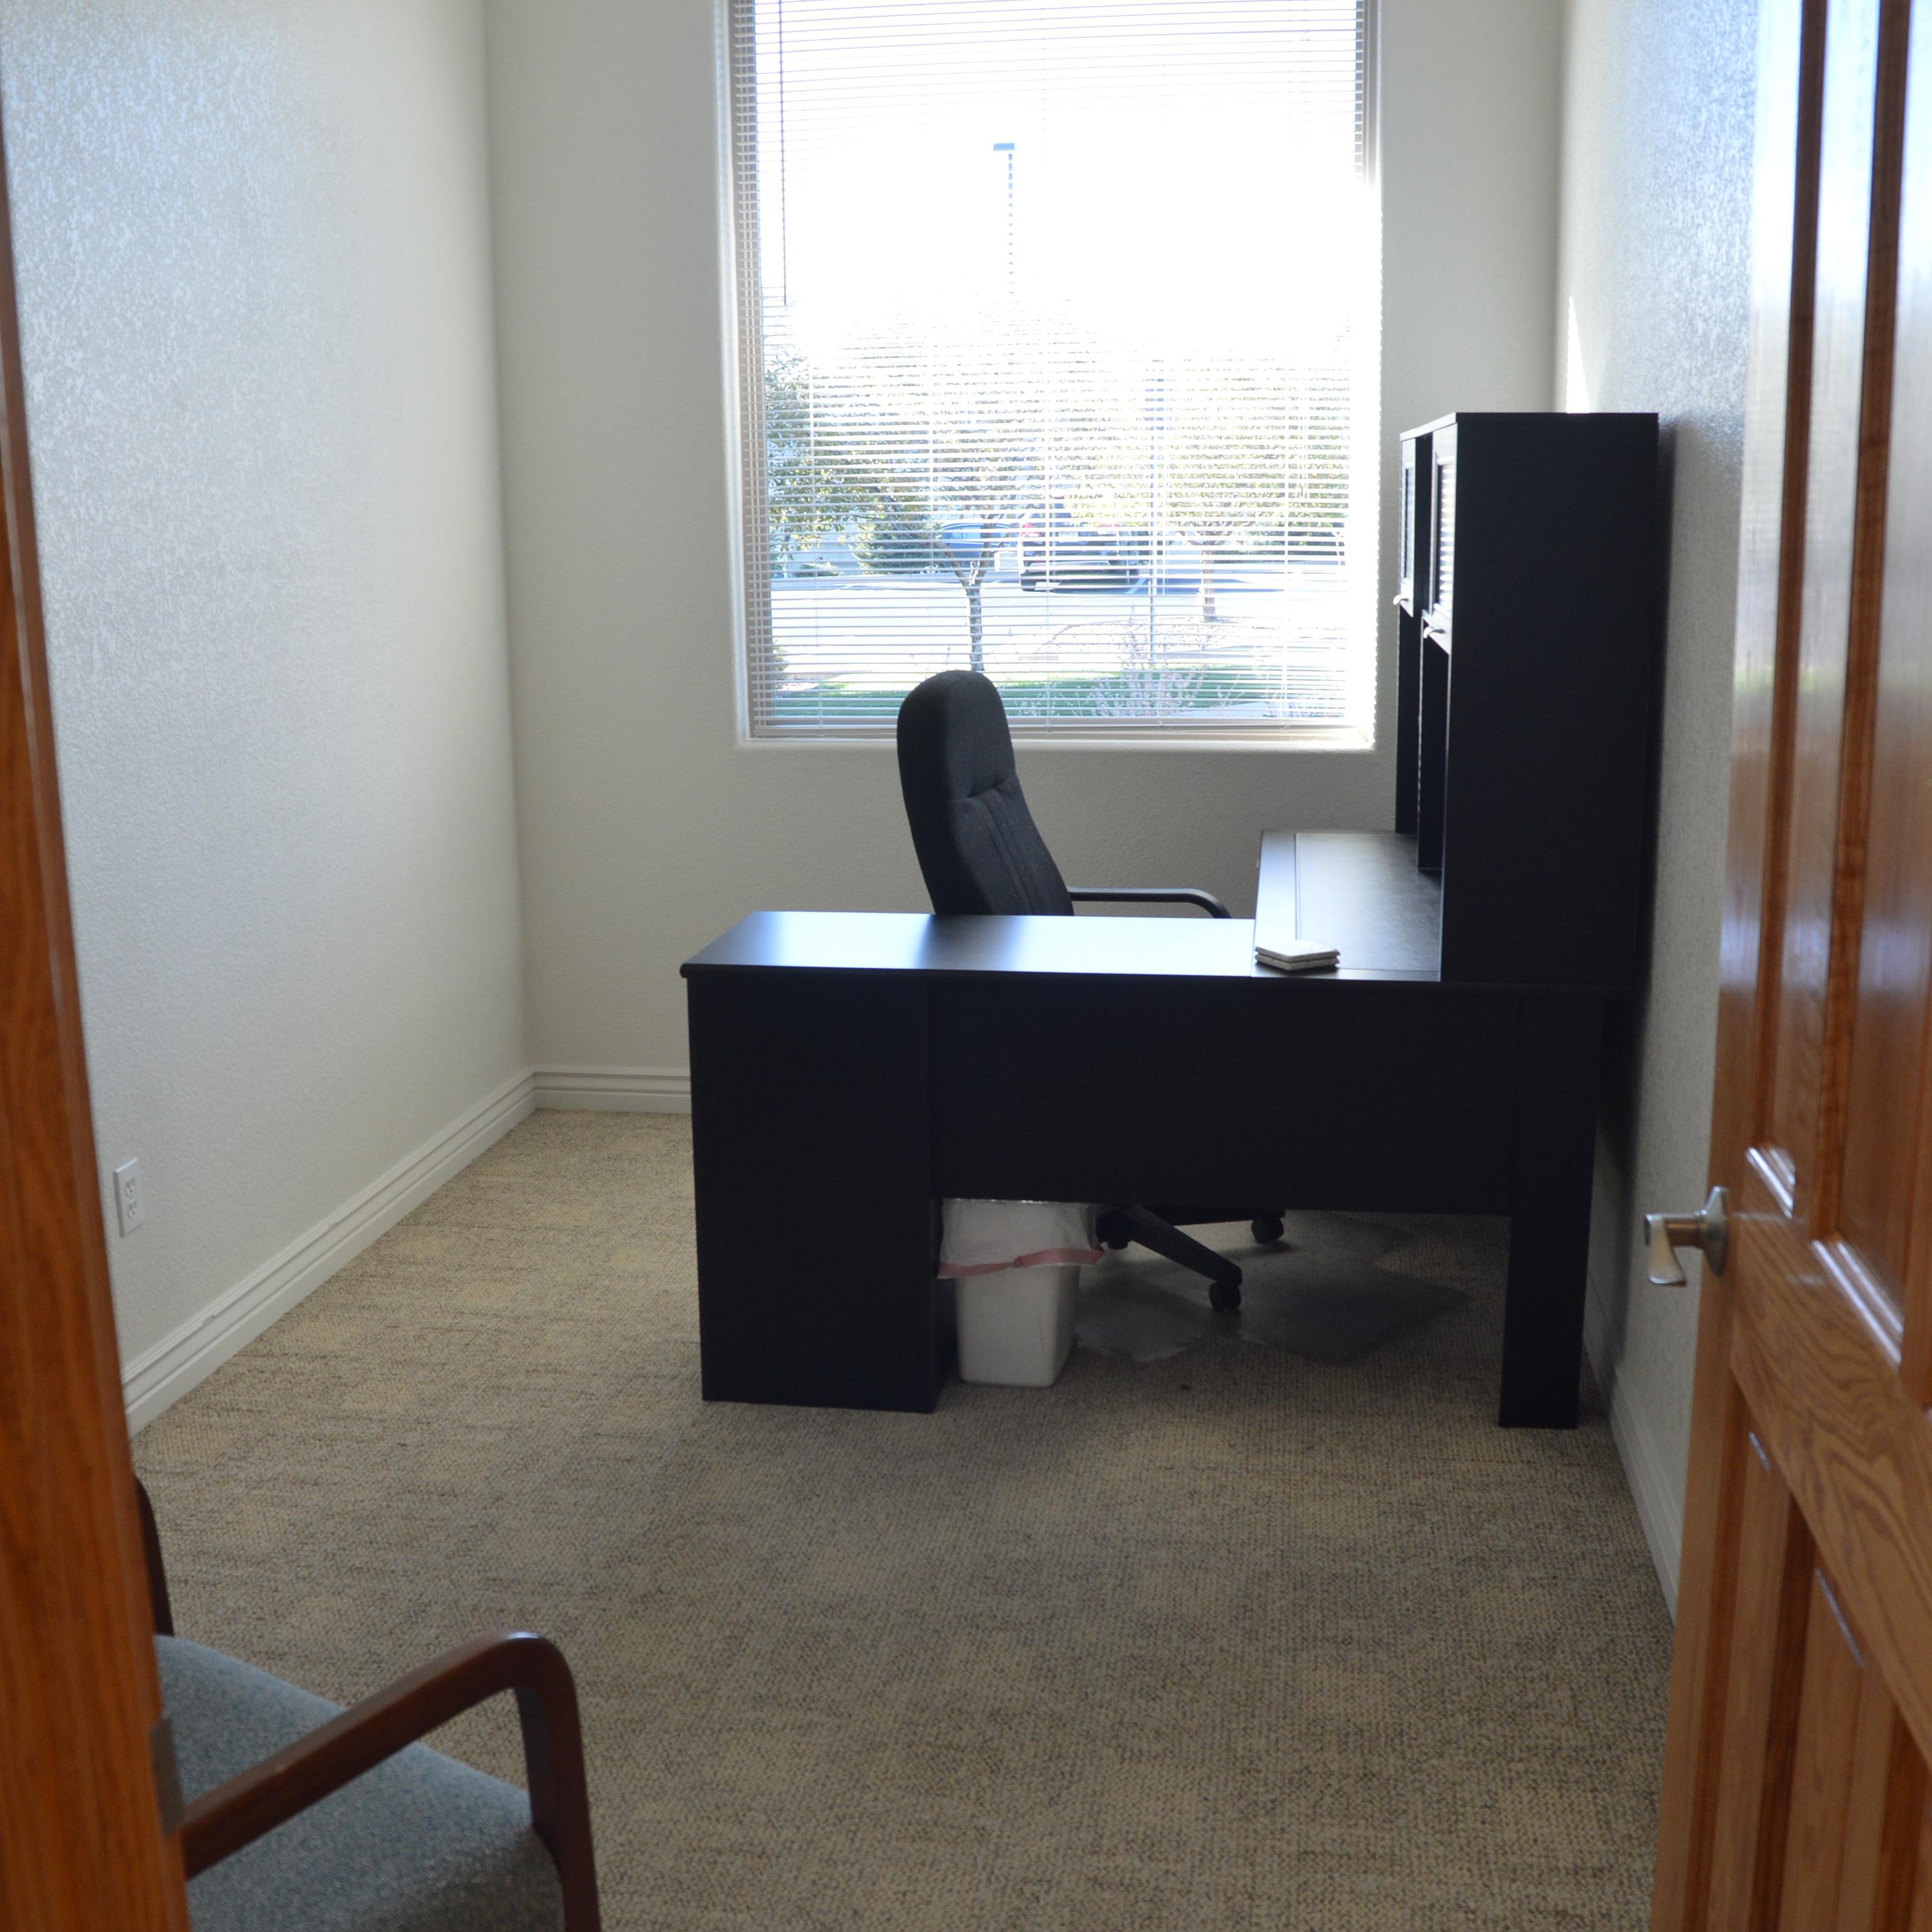 Personal Benefit Financial - Office Suite 1